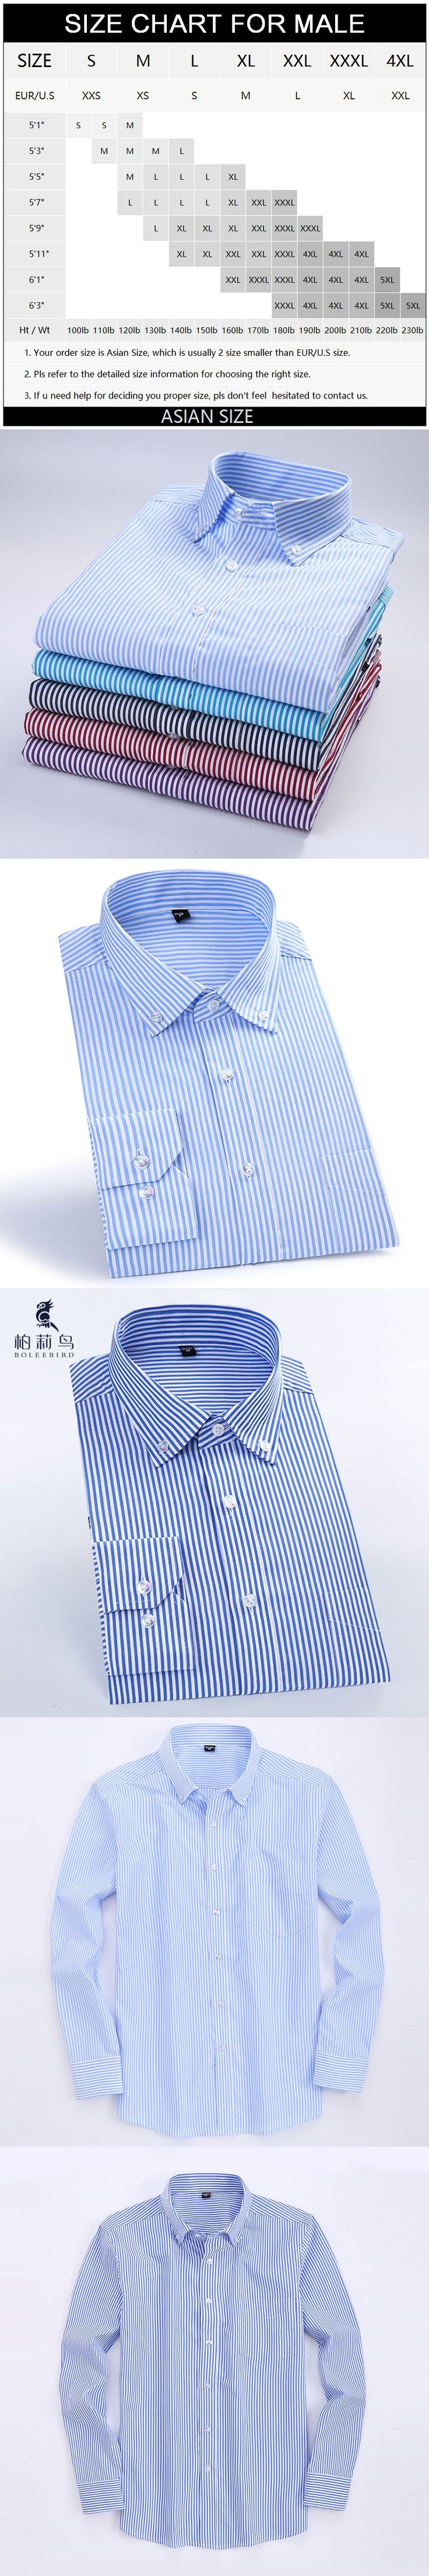 Men's Long Sleeve Blue/white Striped Dress Shirt with Pocket Comfortable Pure Cotton Smart Casual Slim-fit Button-down Shirts